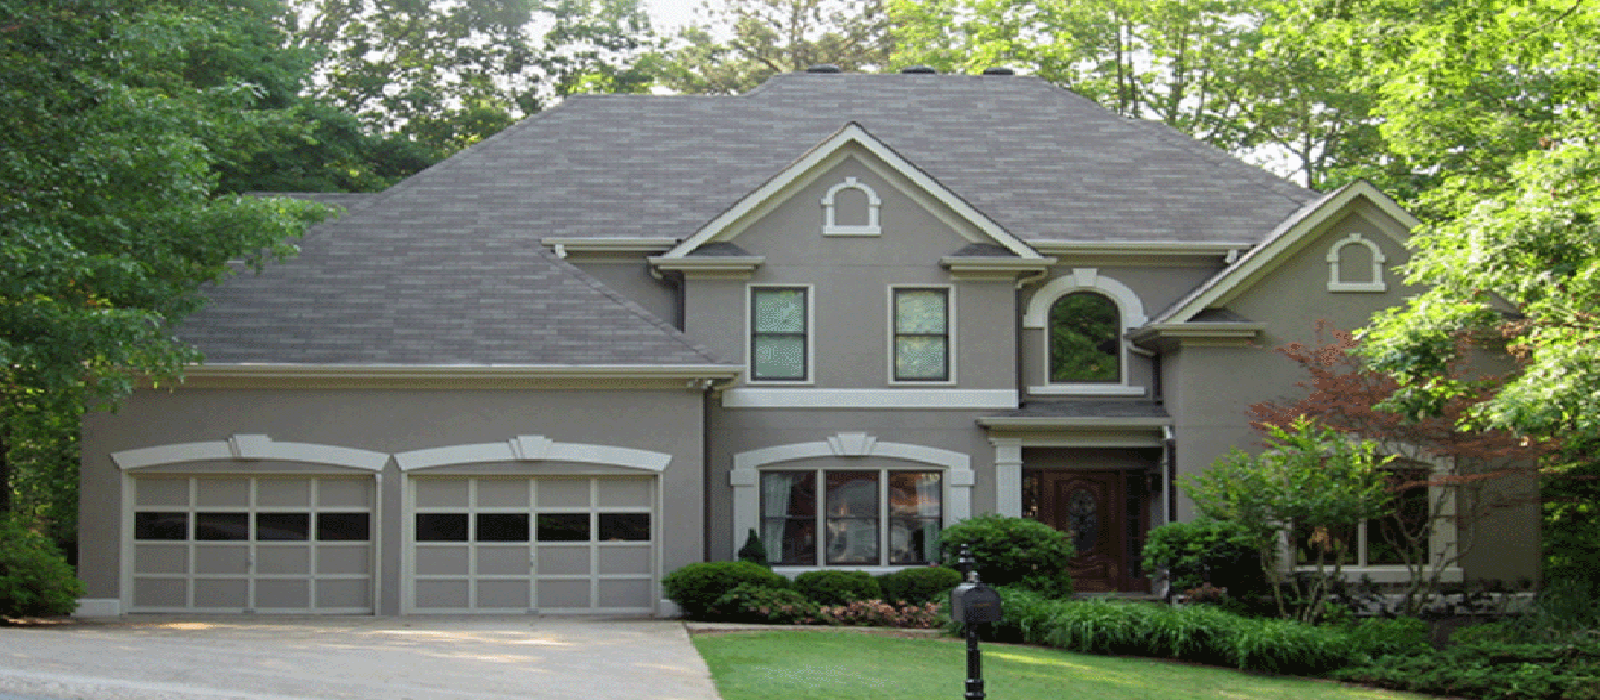 Painters overland park ks exterior house painting contractors for Exterior painting